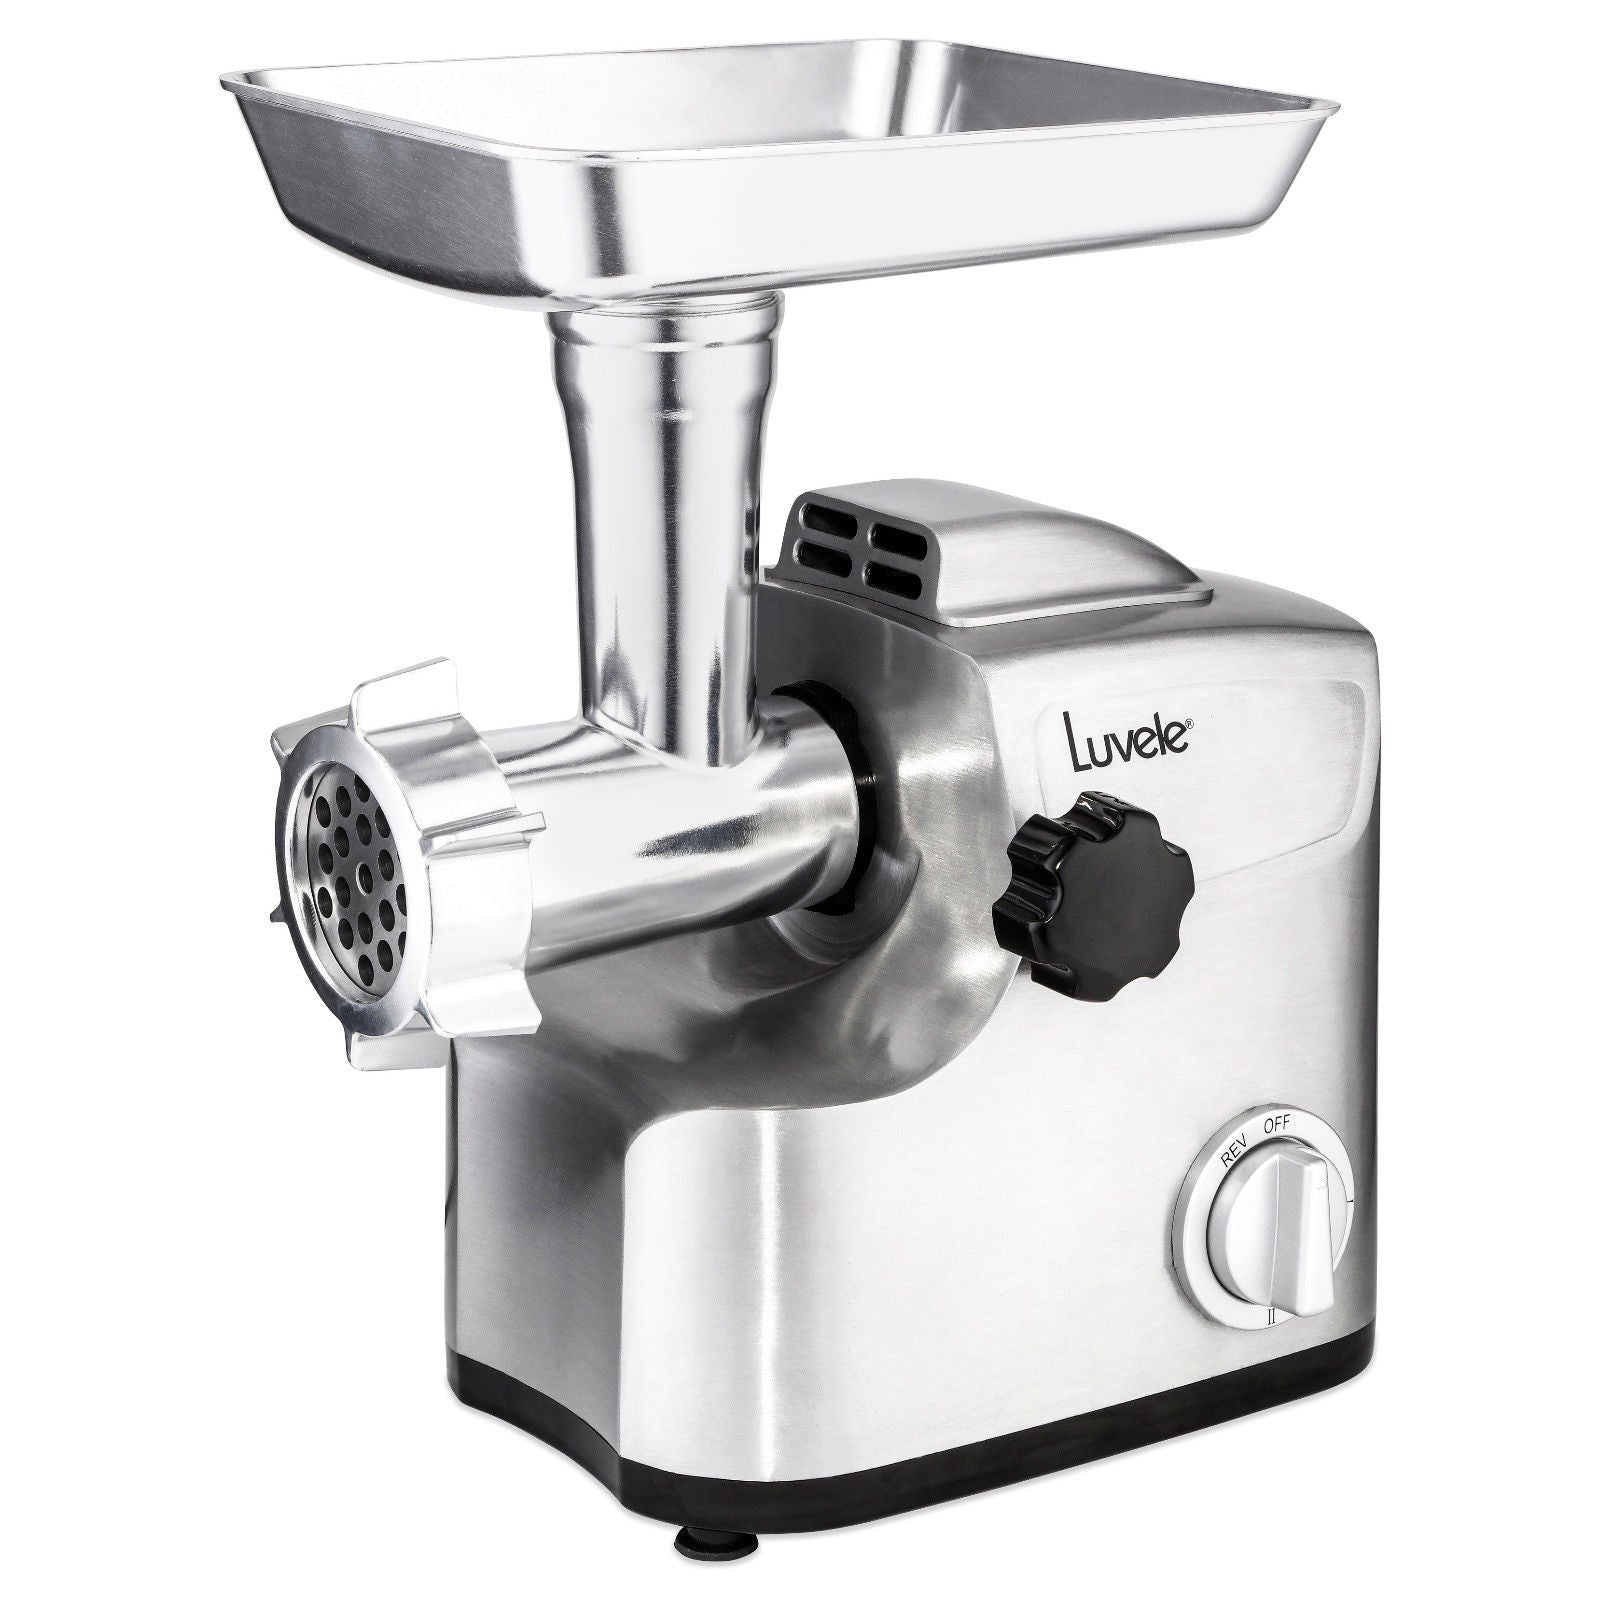 Luvele Ultimate Electric Meat Grinder | Sausage Maker | 1800w (700w rated) LUMG700AUS Meat Grinder Luvele AU